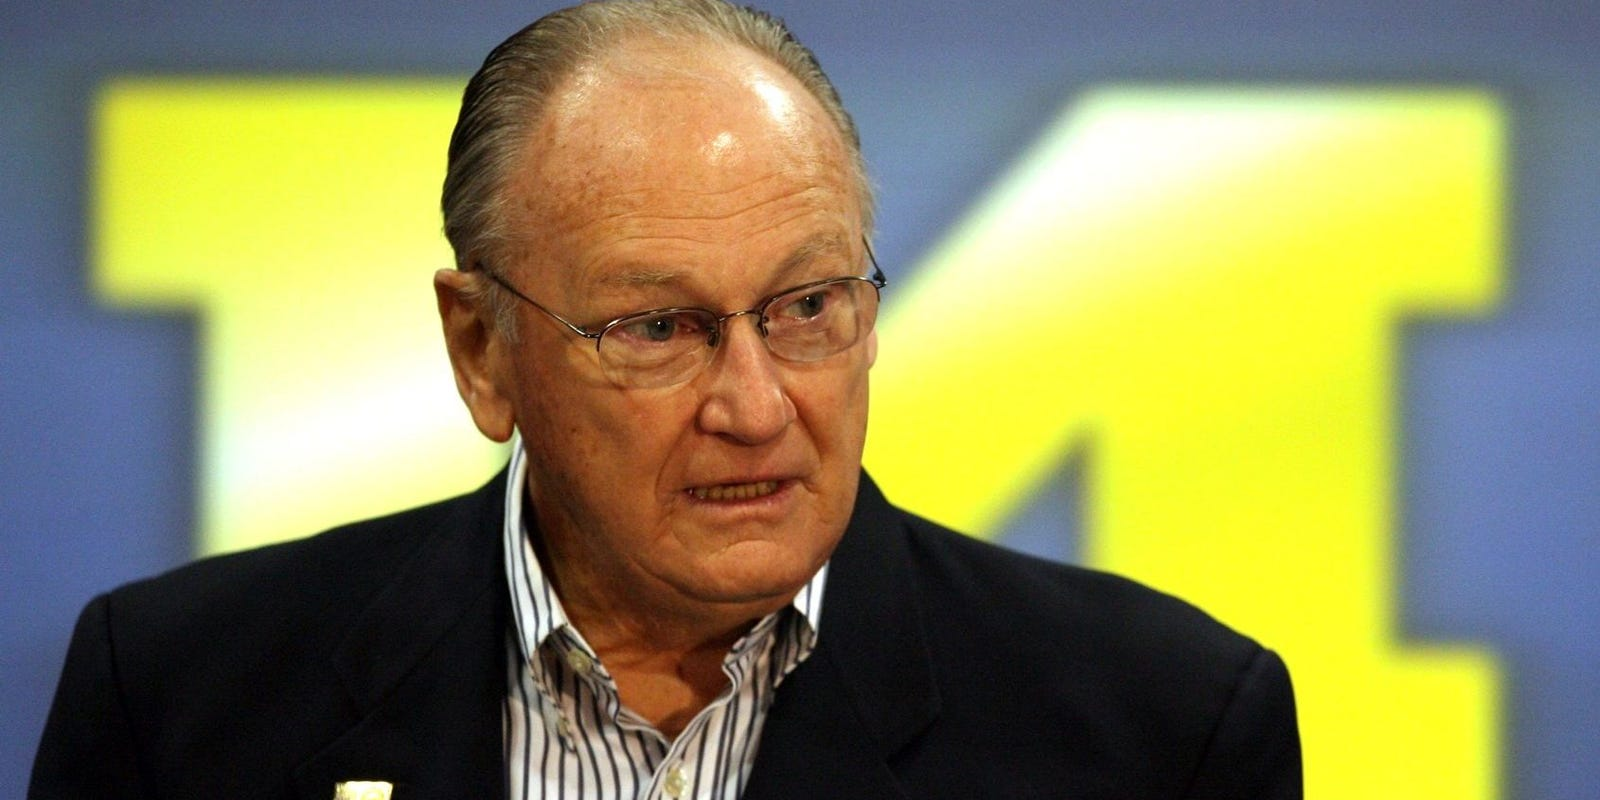 Michigan's Bo Schembechler knew of doctor's abuse, lawsuit alleges